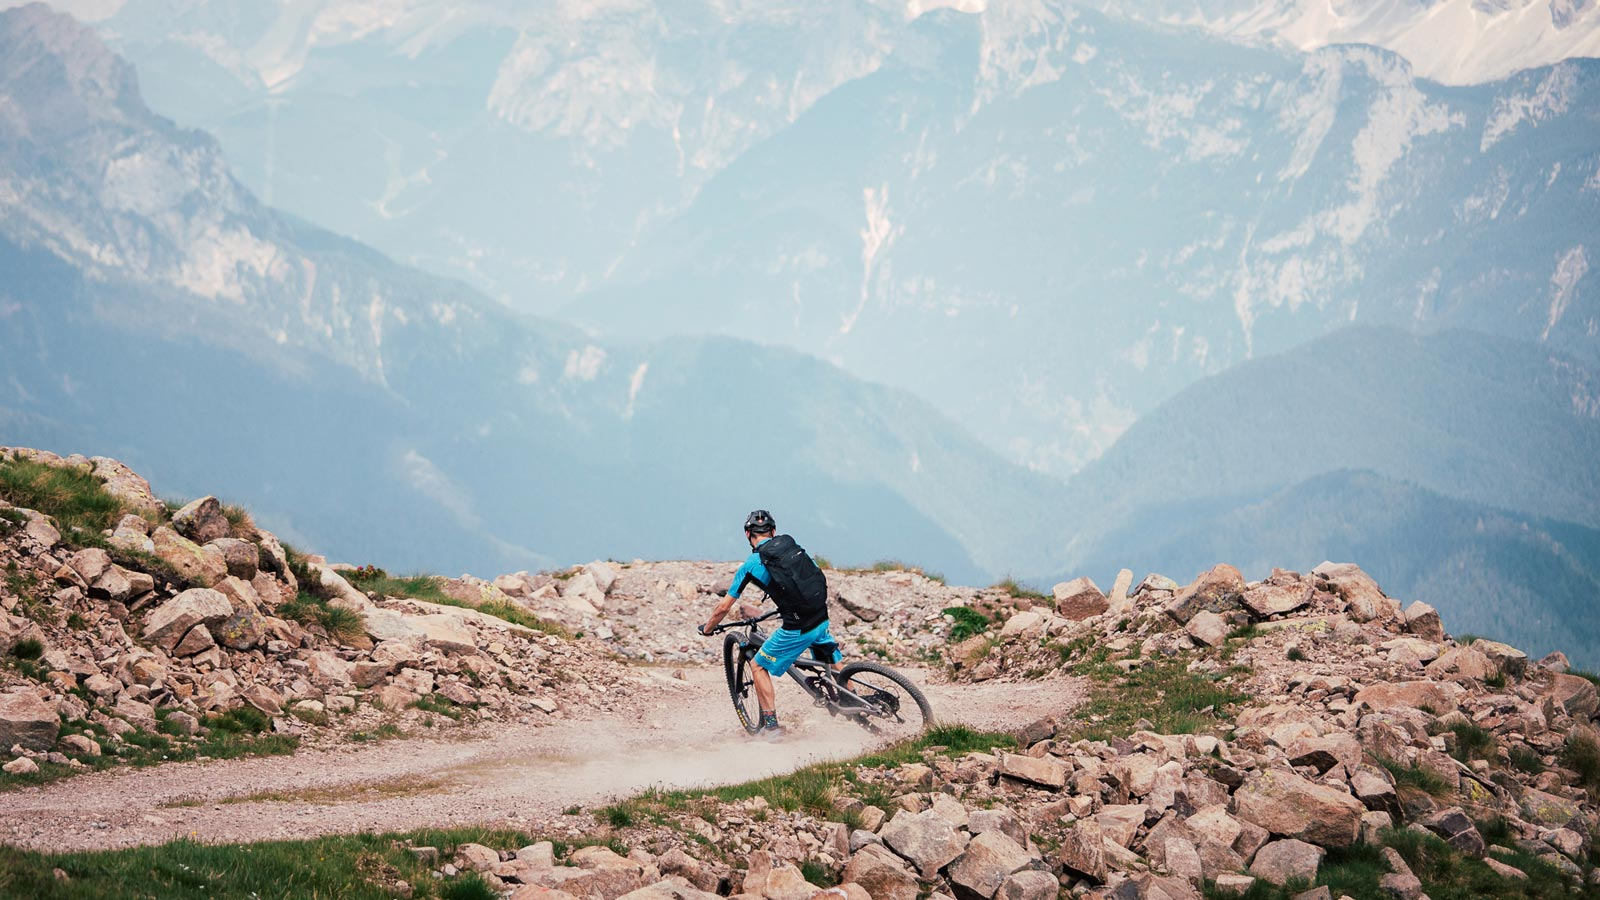 View of the Dolomites from Lake San Pellegrino